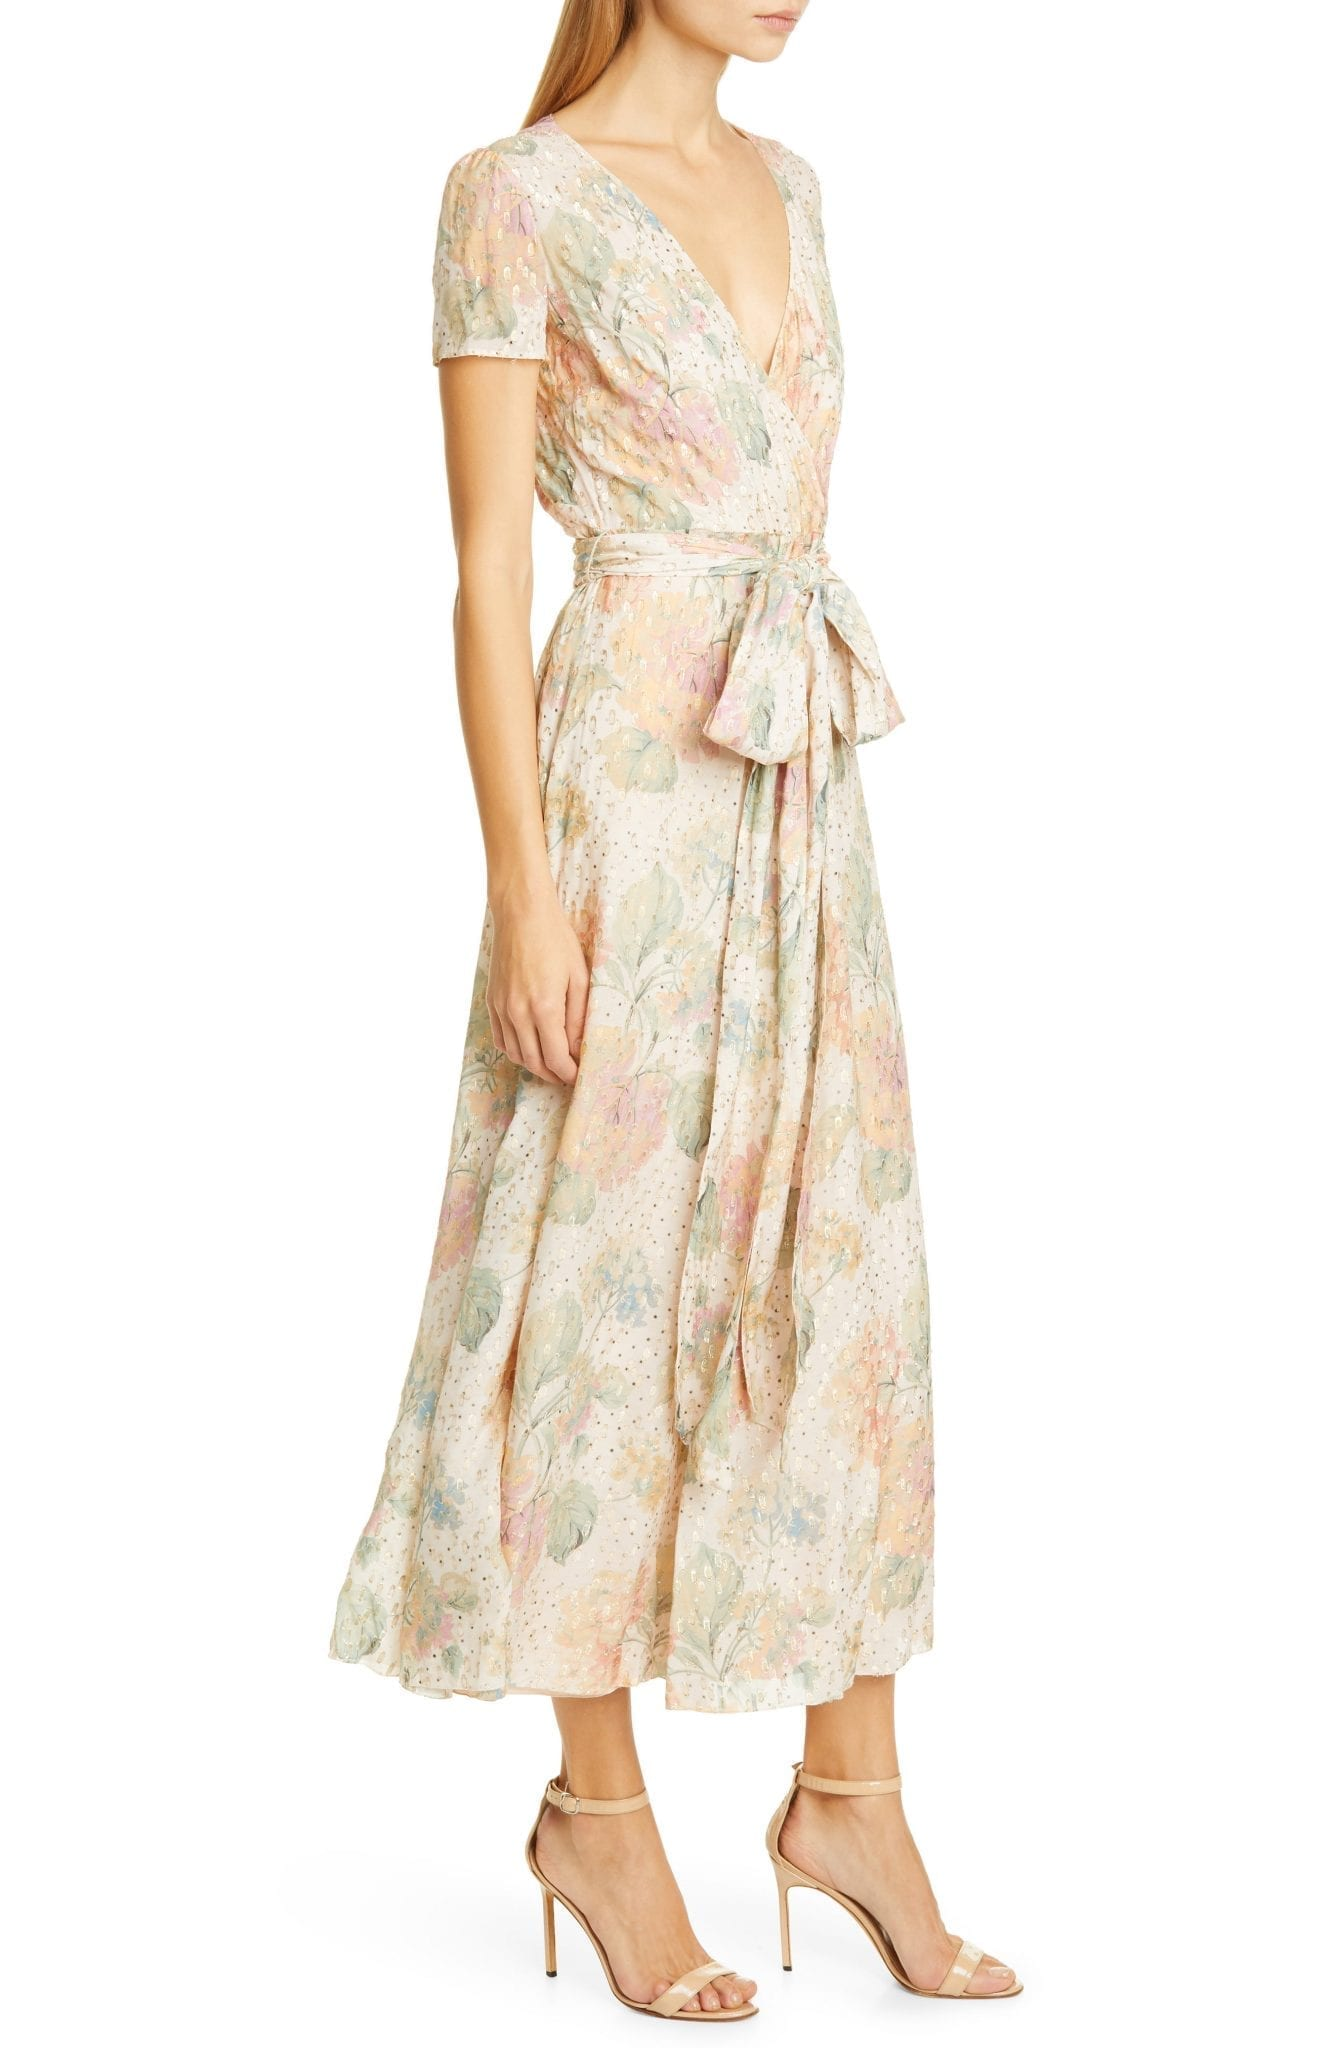 RED VALENTINO Floral Fil Coupé Faux Wrap Dress